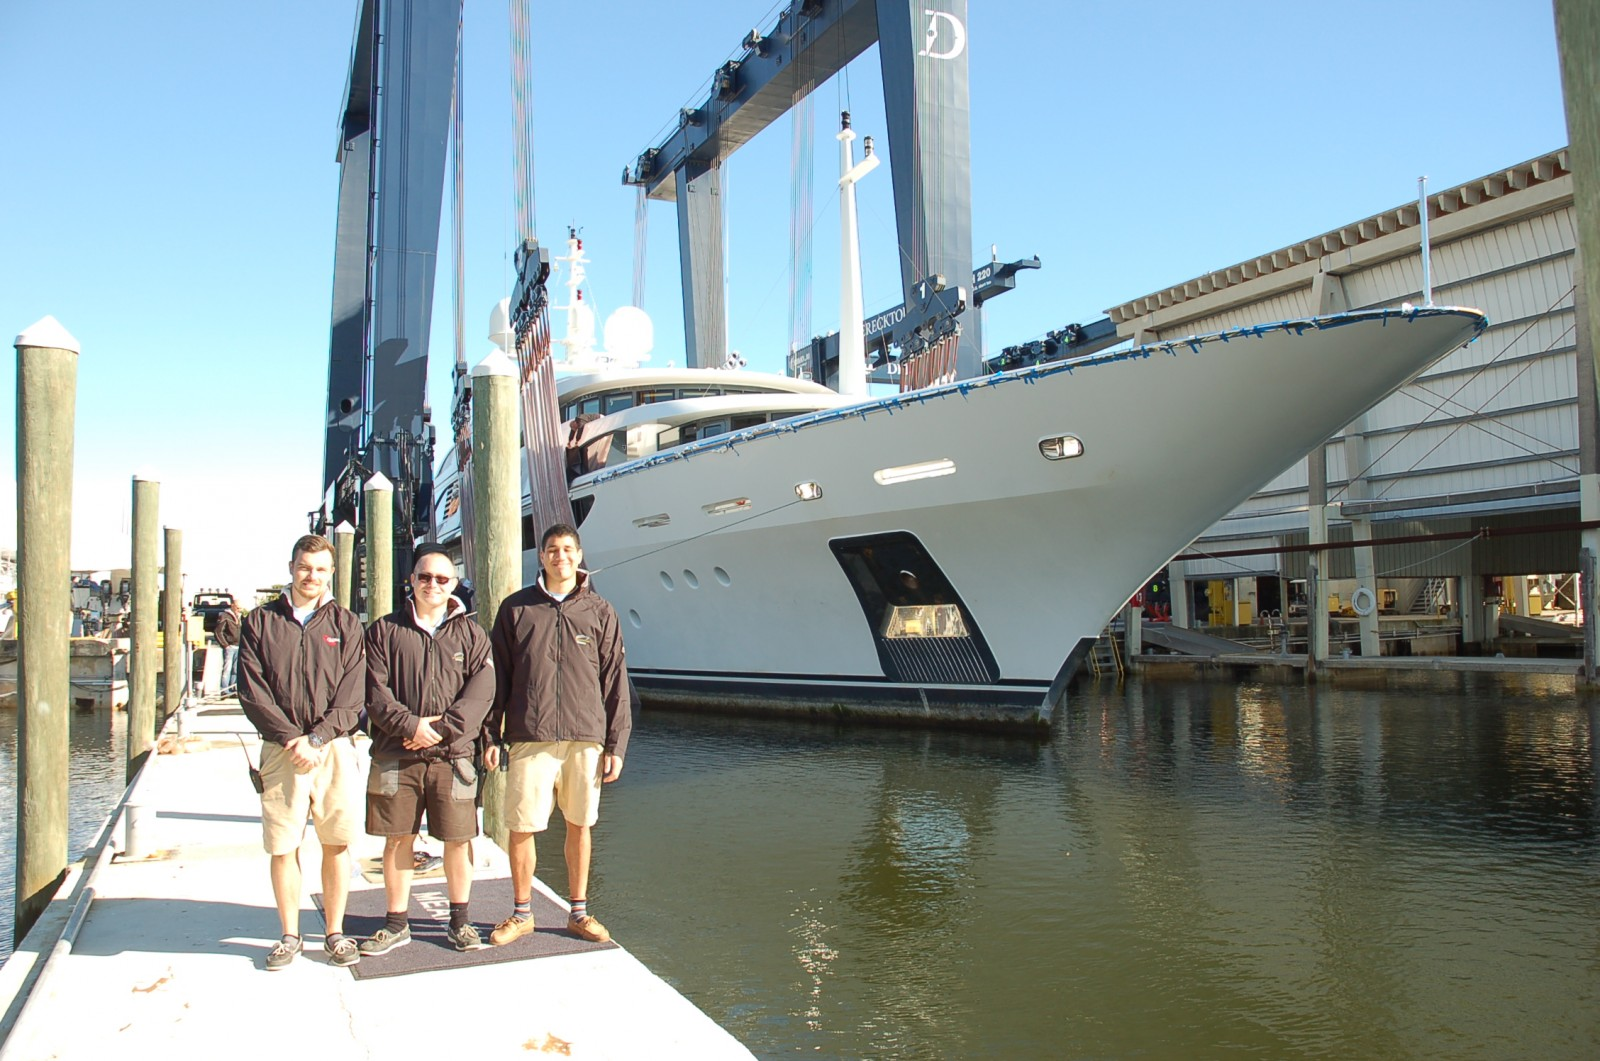 2nd Engineer Jakob Jensen, Chief Engineer Mads Petersen, 2nd Engineer Max Johnson wait to see if their work to lighten M/Y Meamina pays off. The lift this morning sets the record for heaviest yacht lifted at Derecktor in Ft. Lauderdale (Feb. 8). PHOTO/DORIE COX